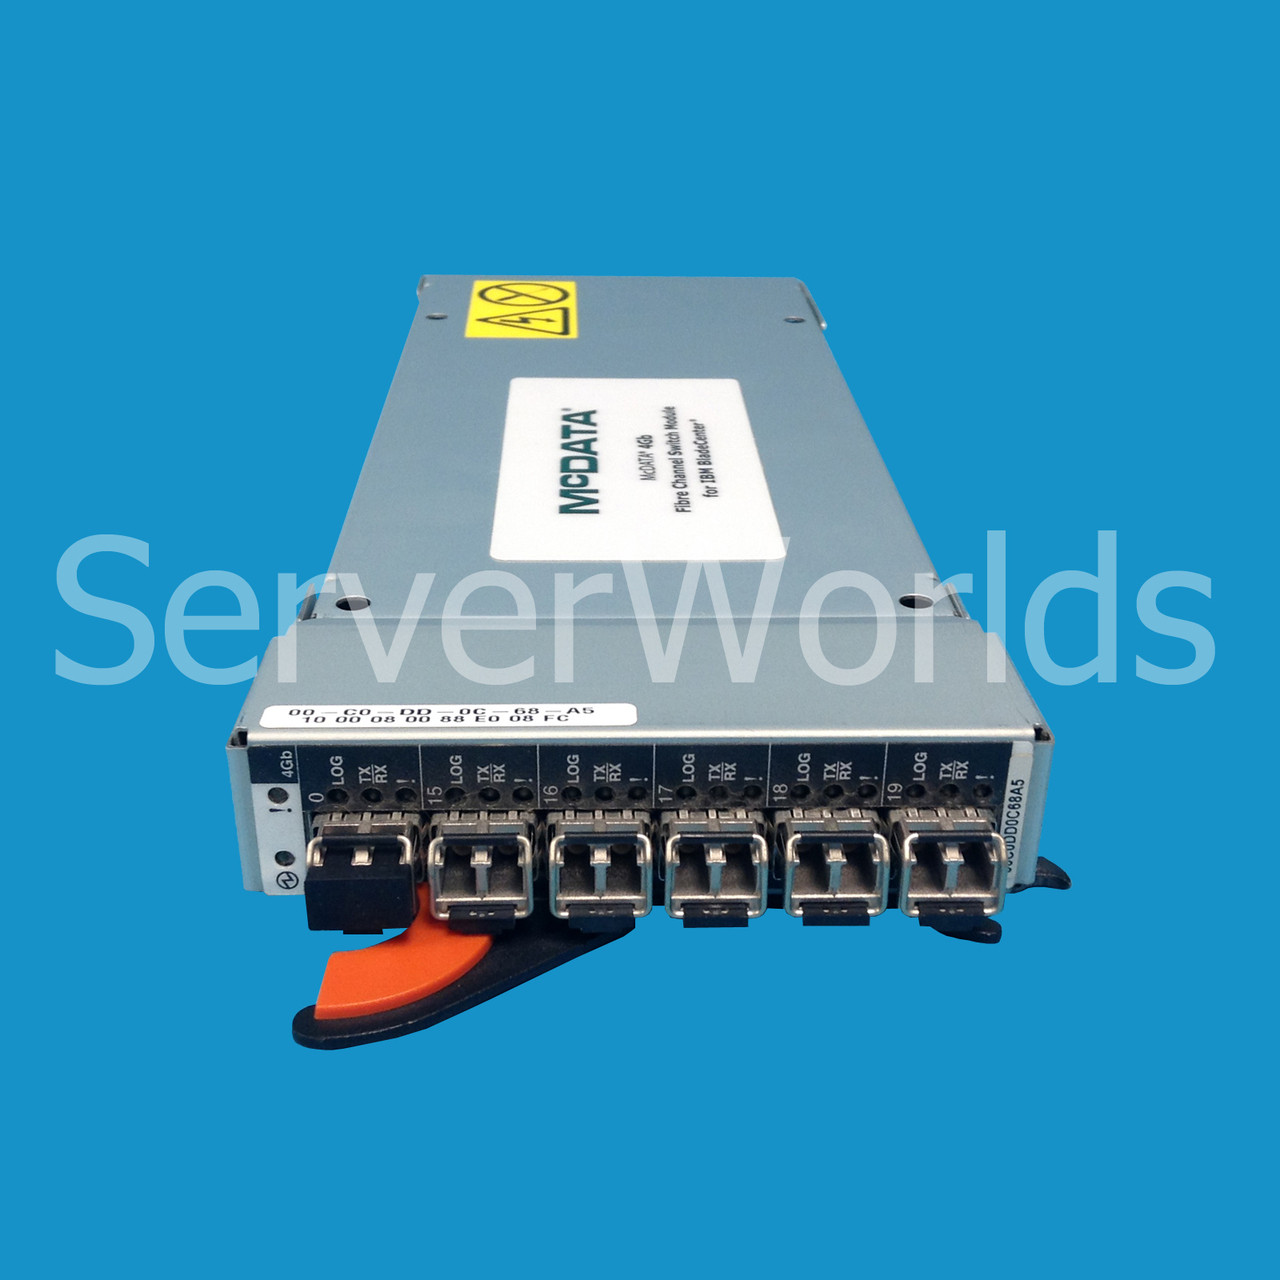 Fibre Channel Switch Module Image 1 2 See More Picture